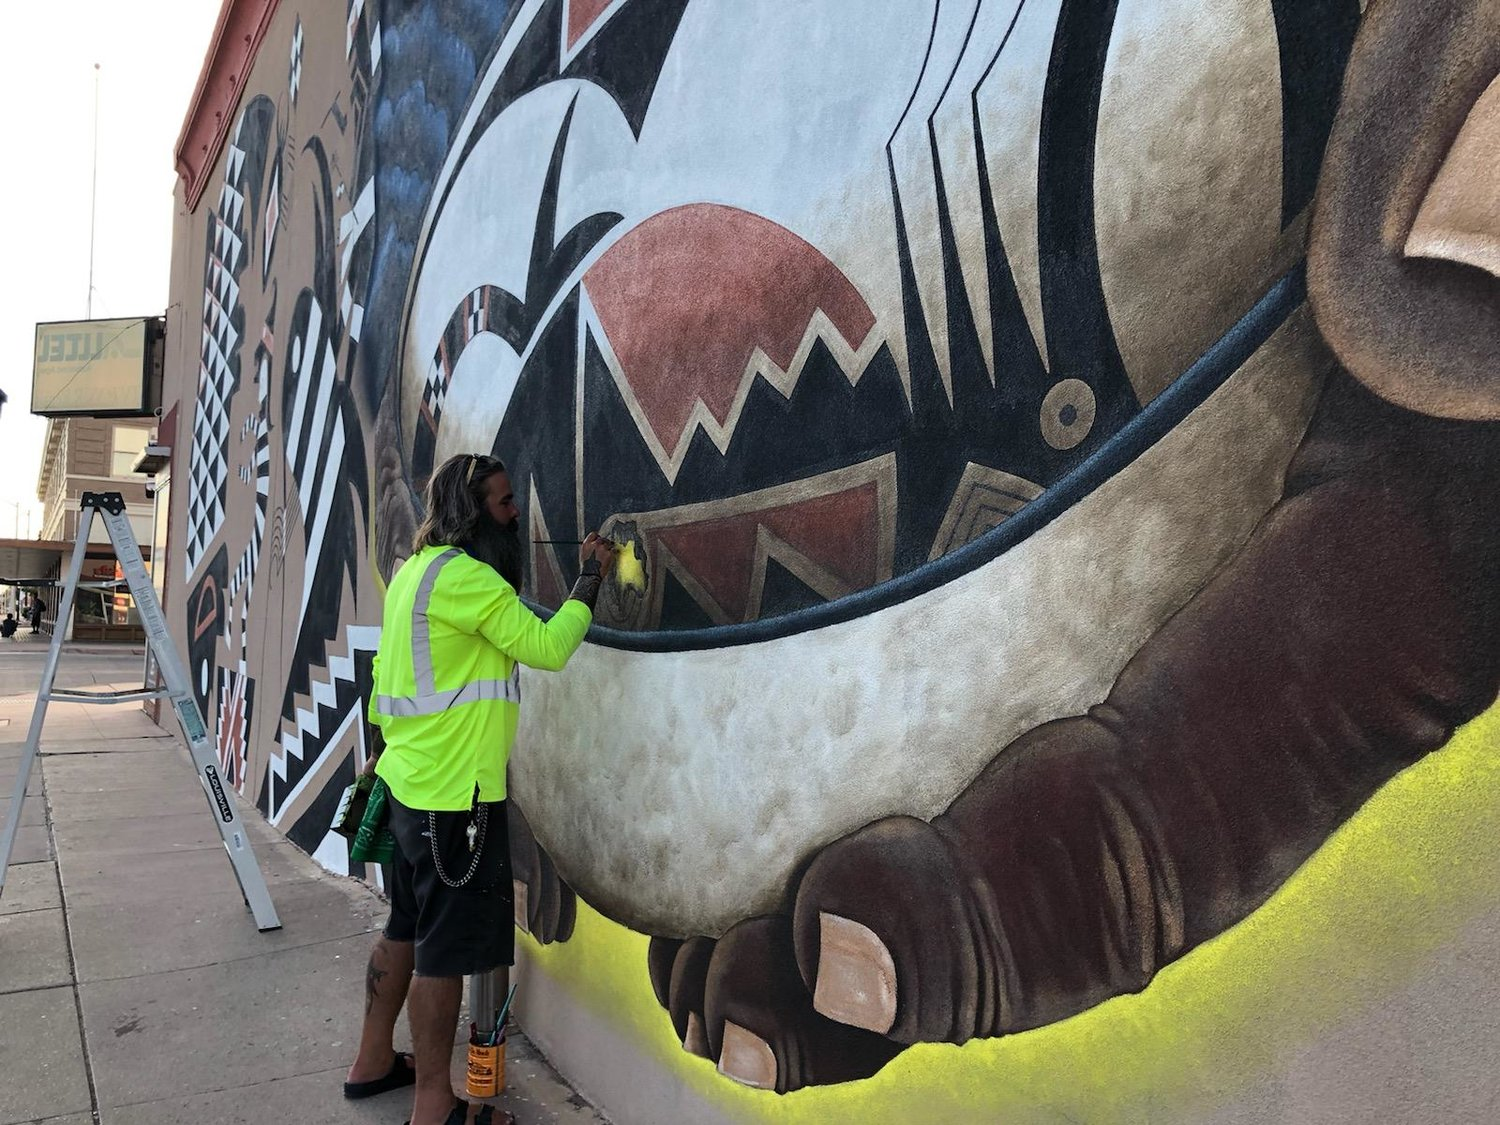 Jesse Kriegel works on his biggest project yet, a large, wide mural depicting the spirit of the Mimbres.